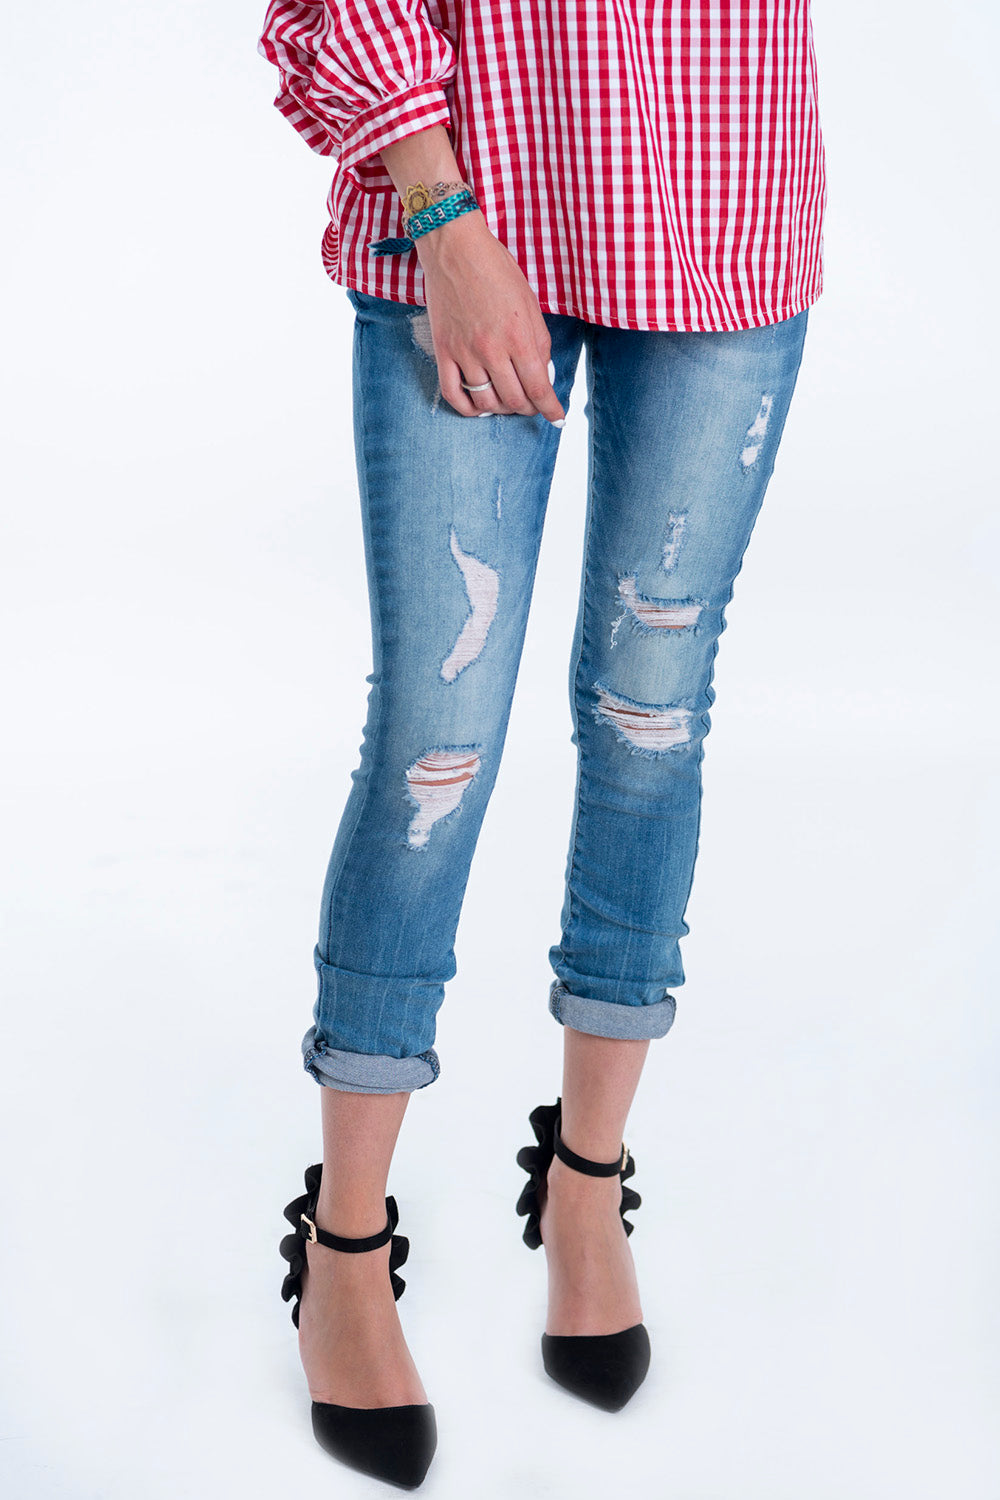 Skinny girlfriend style ripped jeans